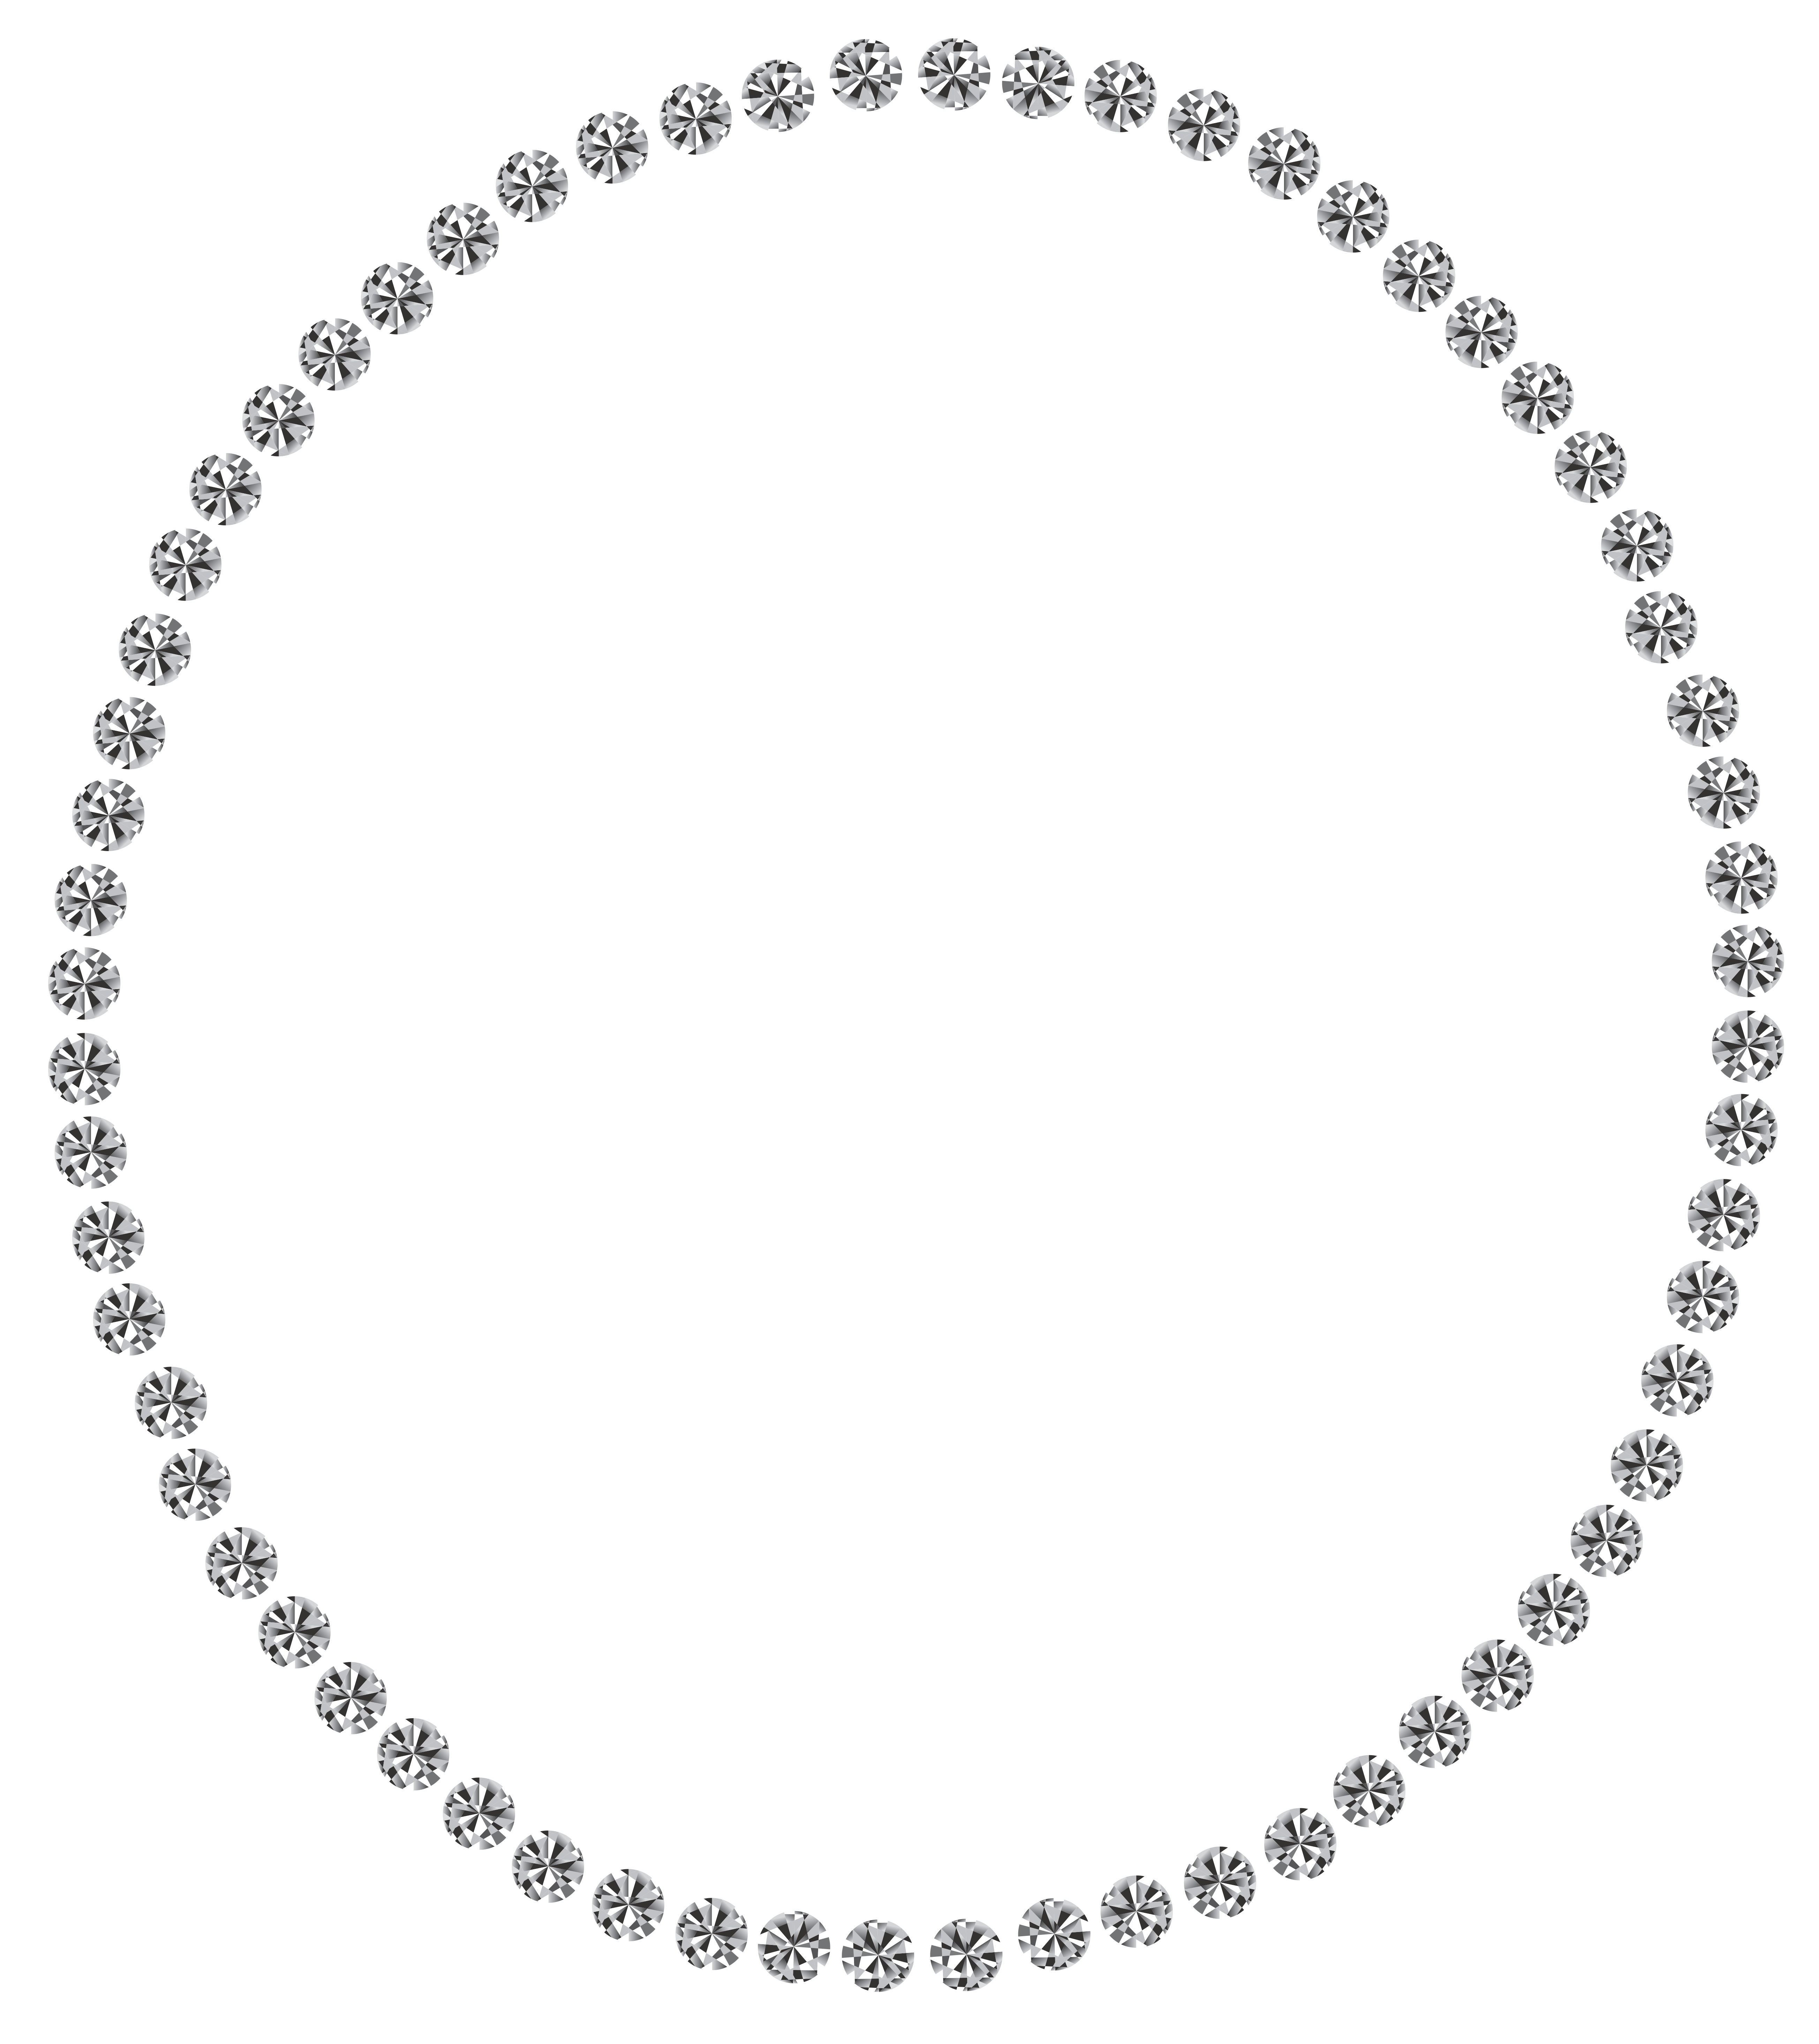 Circle clipart decoration. Diamonds oval png image